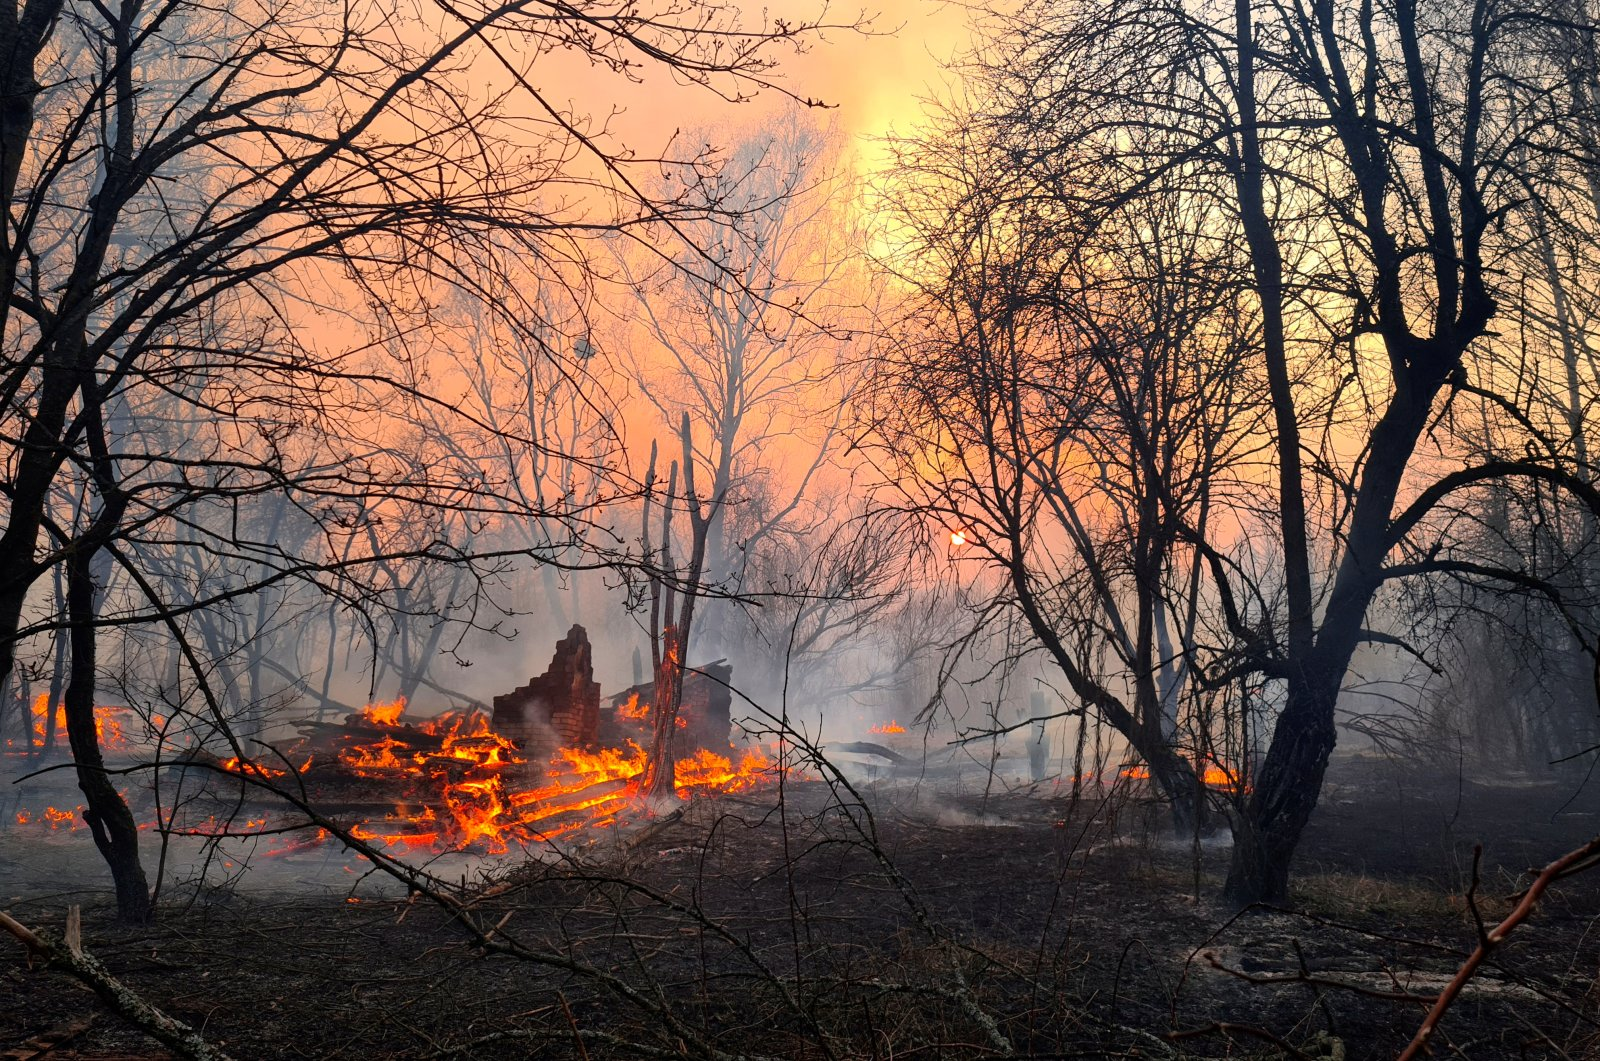 A fire burns in the exclusion zone around the Chernobyl nuclear power plant, outside the village of Rahivka, April 5, 2020. (REUTERS Photo)